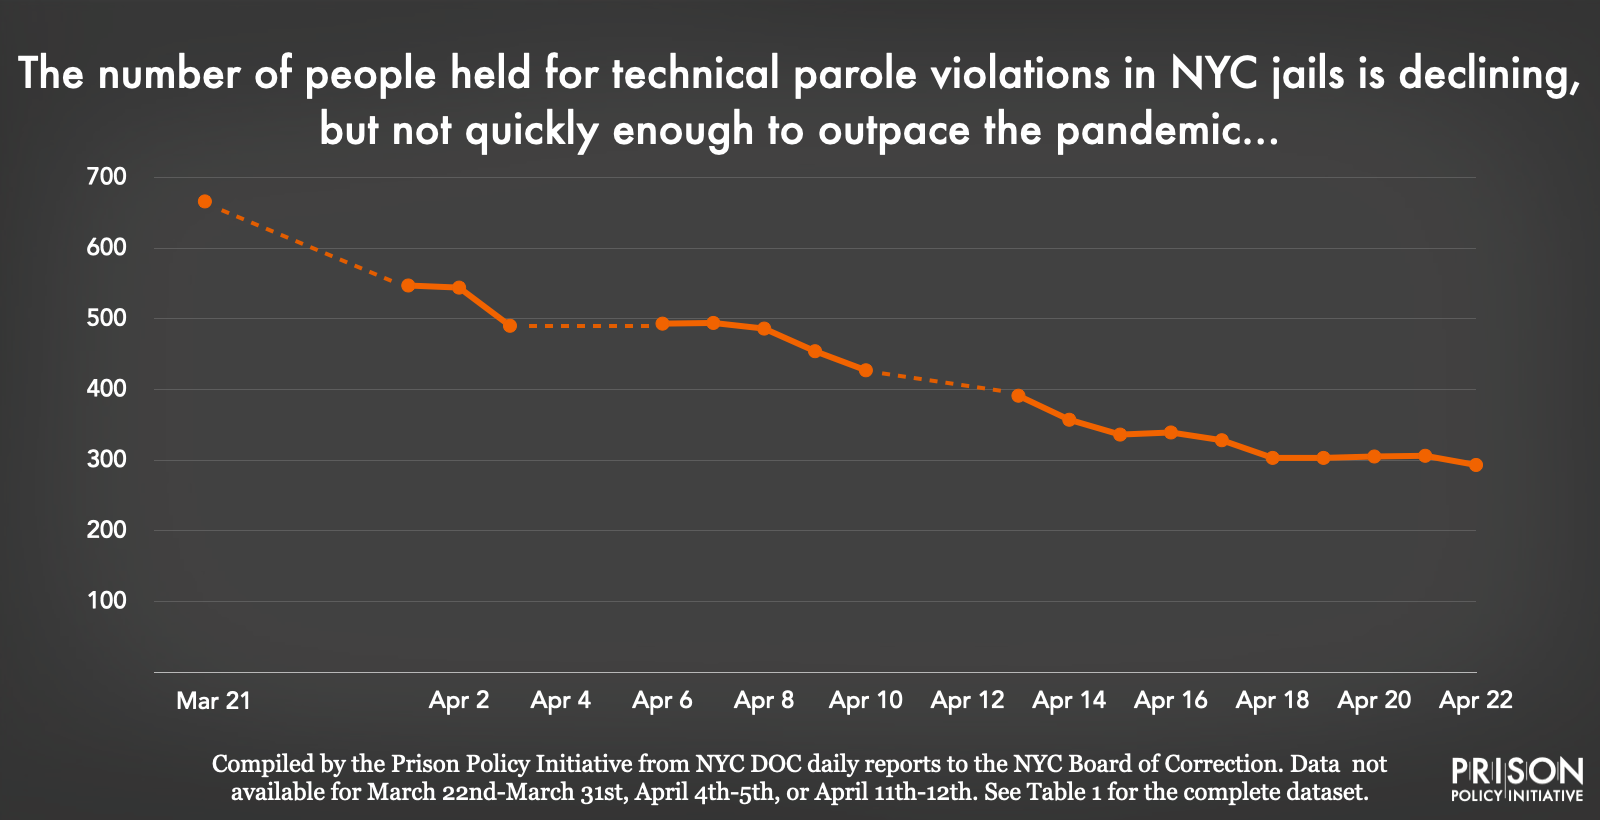 graph showing the decline in the number of people held in NYC jails for technical violations of parole.